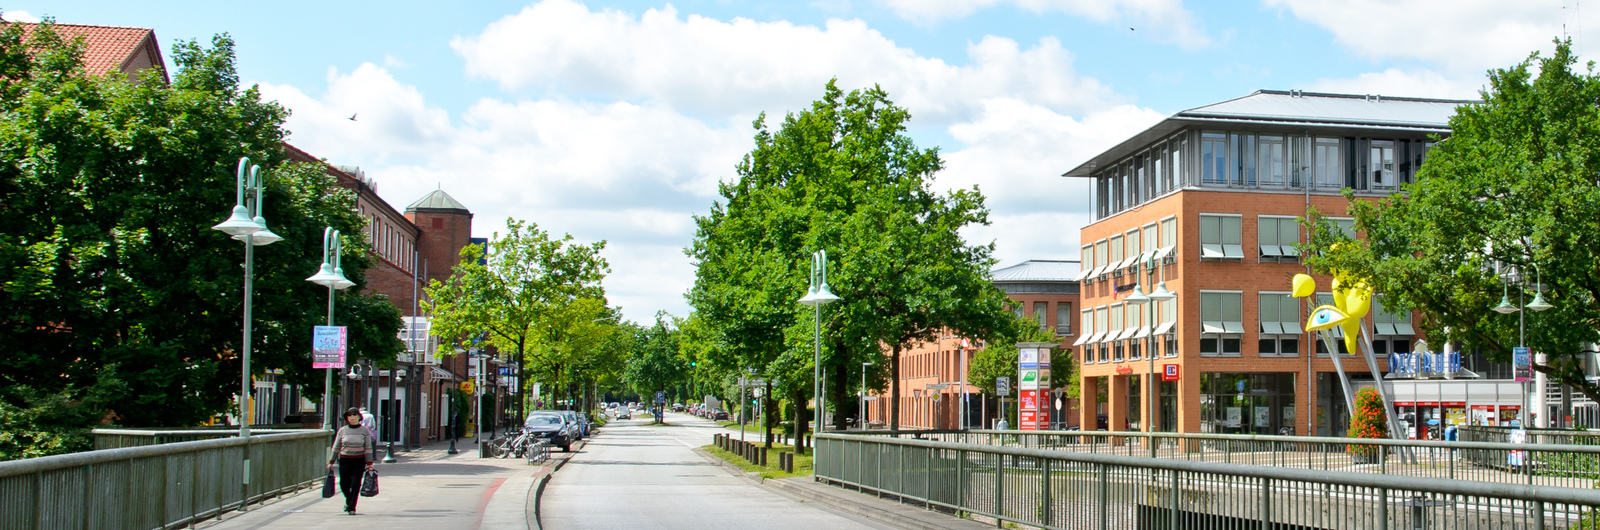 norderstedt city header